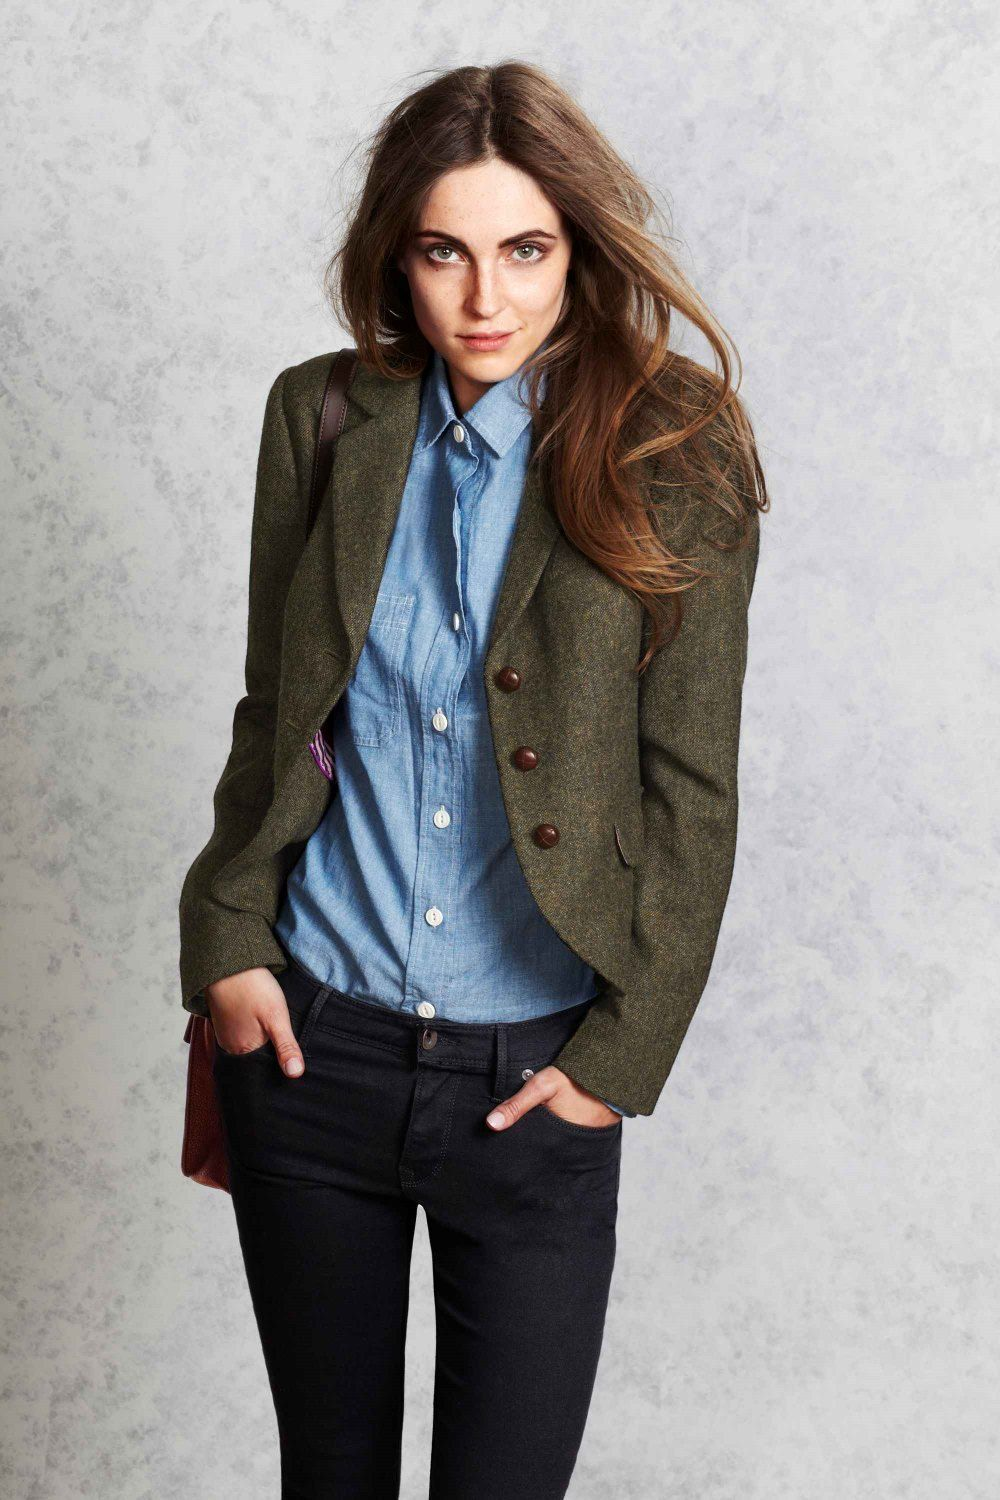 The Austerberry Blazer   Jack Wills   Things to Wear   Blazer ... 538a4ef9b6